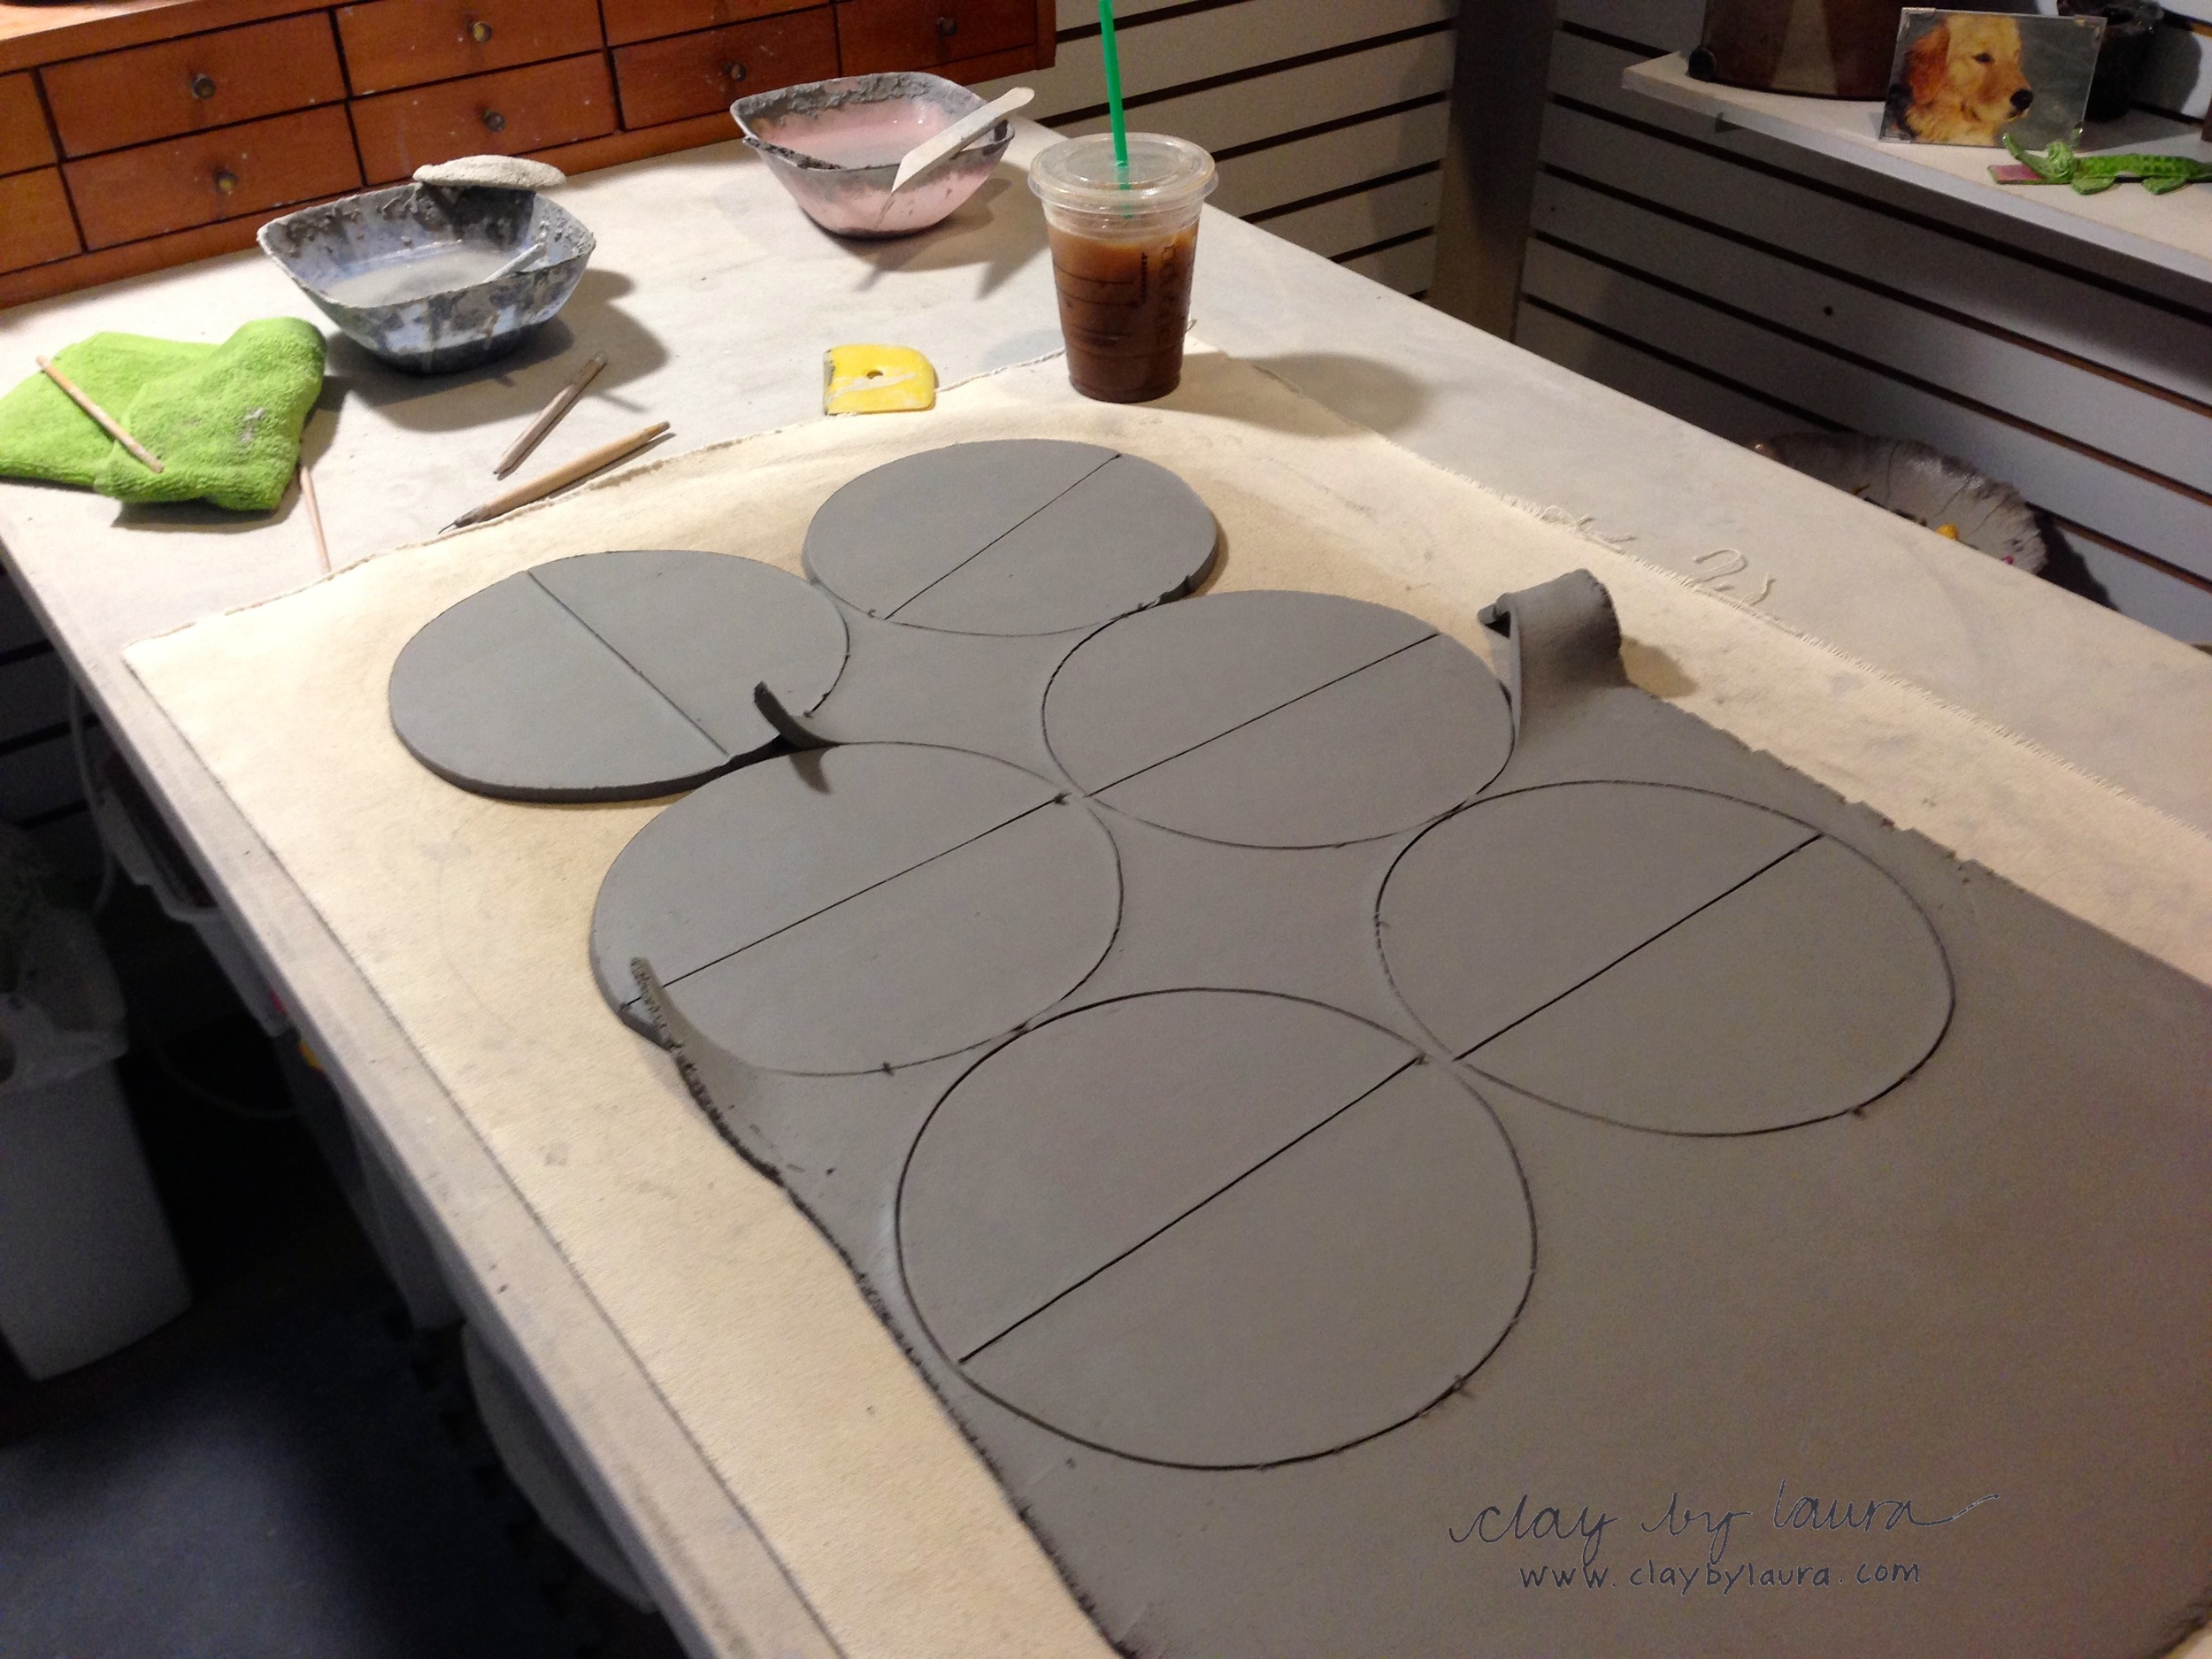 Next I cut out the shape of the clay using a template I've made. In this case it is a circle which I cut in half.